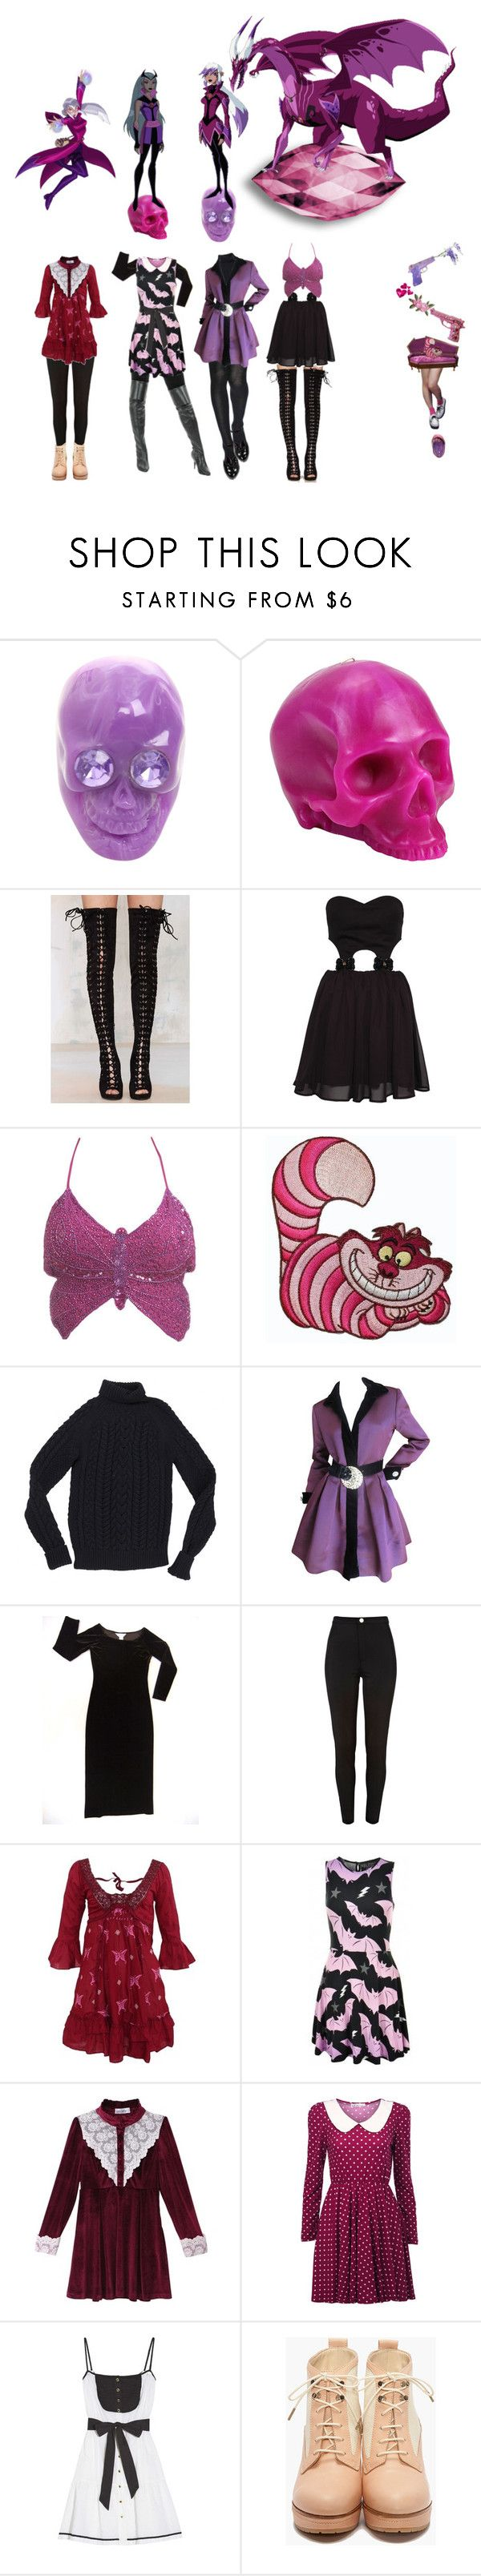 """Charmcaster"" by everysimpleplan ❤ liked on Polyvore featuring D.L. & Co., Jeffrey Campbell, Paprika, Wet Seal, Disney, INC International Concepts, Sugarbone, Isabel Marant, Oscar de la Renta and River Island"